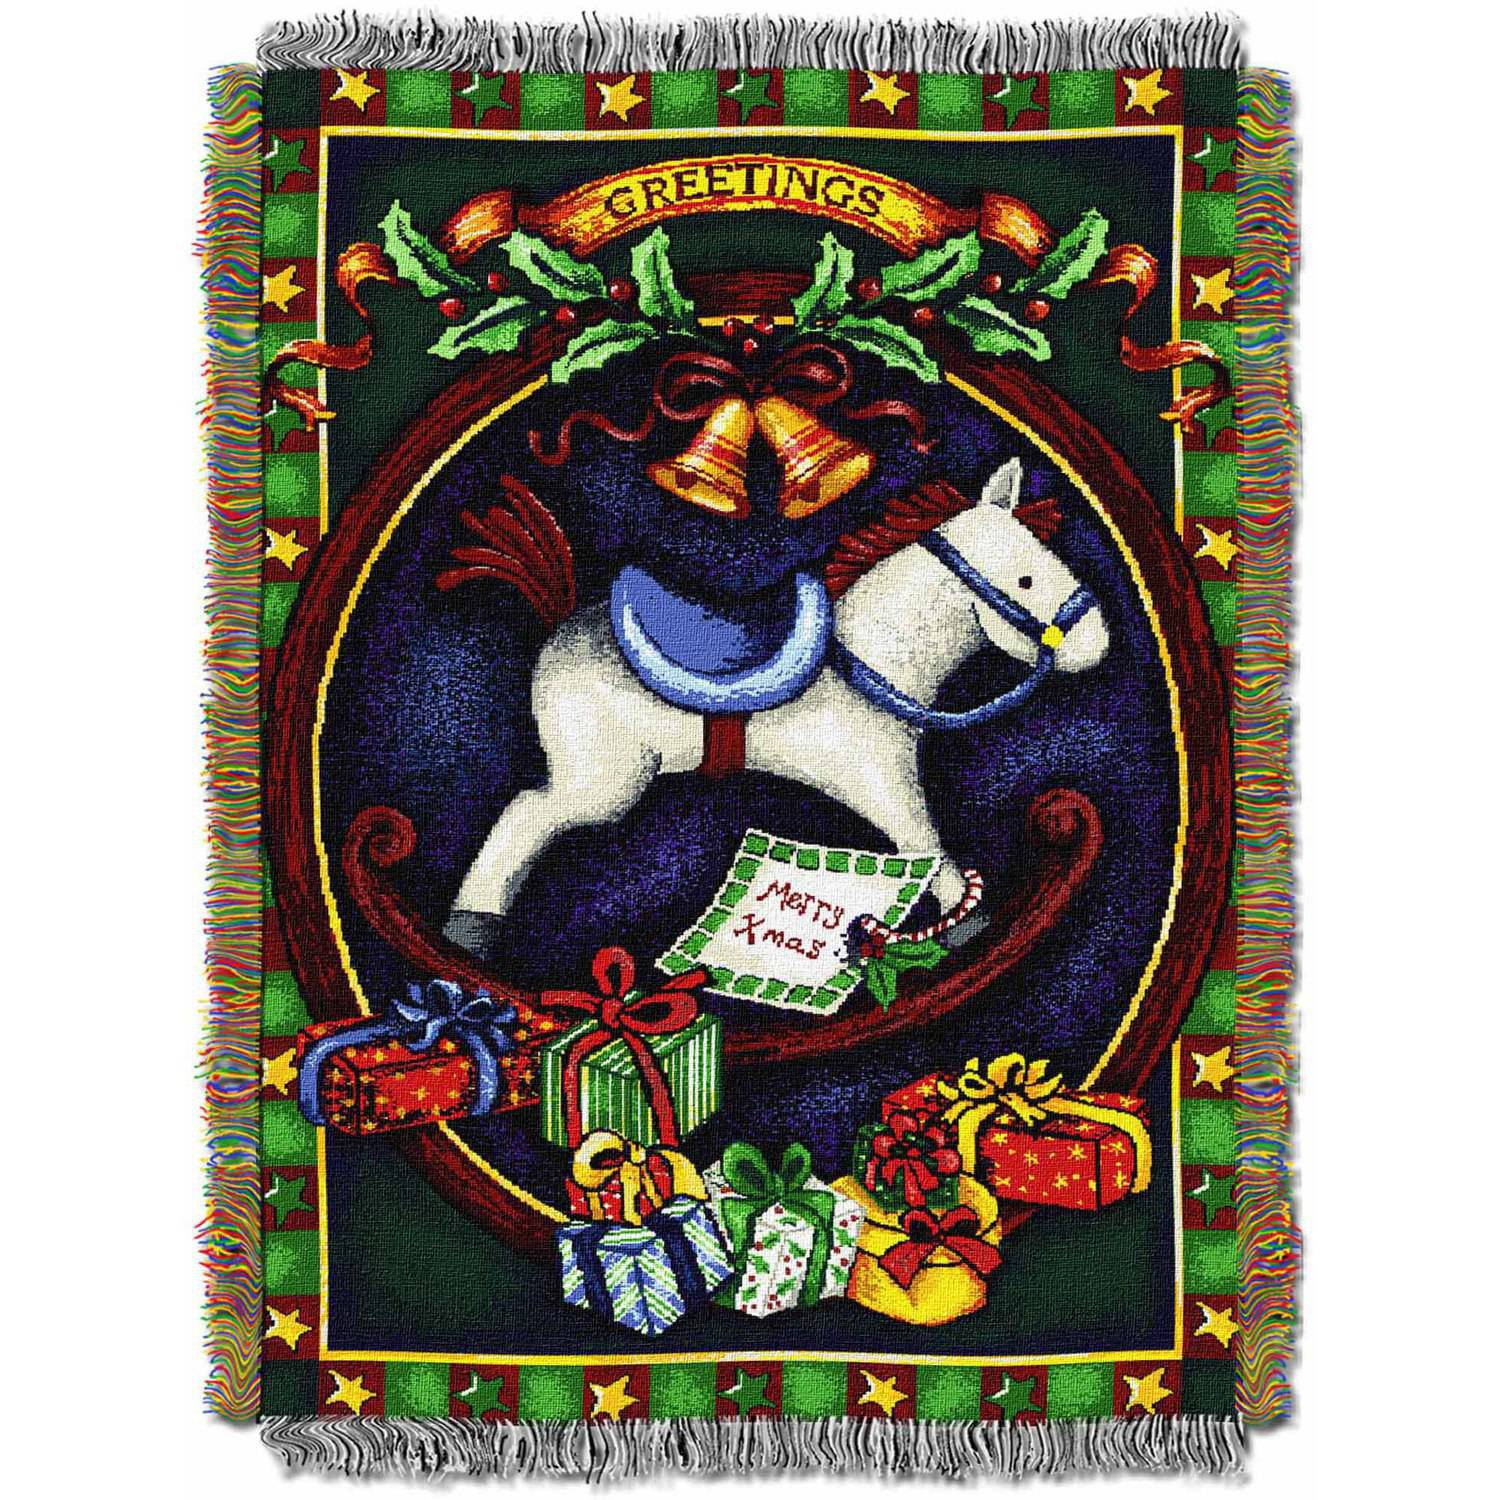 "Holiday Hobby Horse 48"" x 60"" Holiday Woven Tapestry Throw"